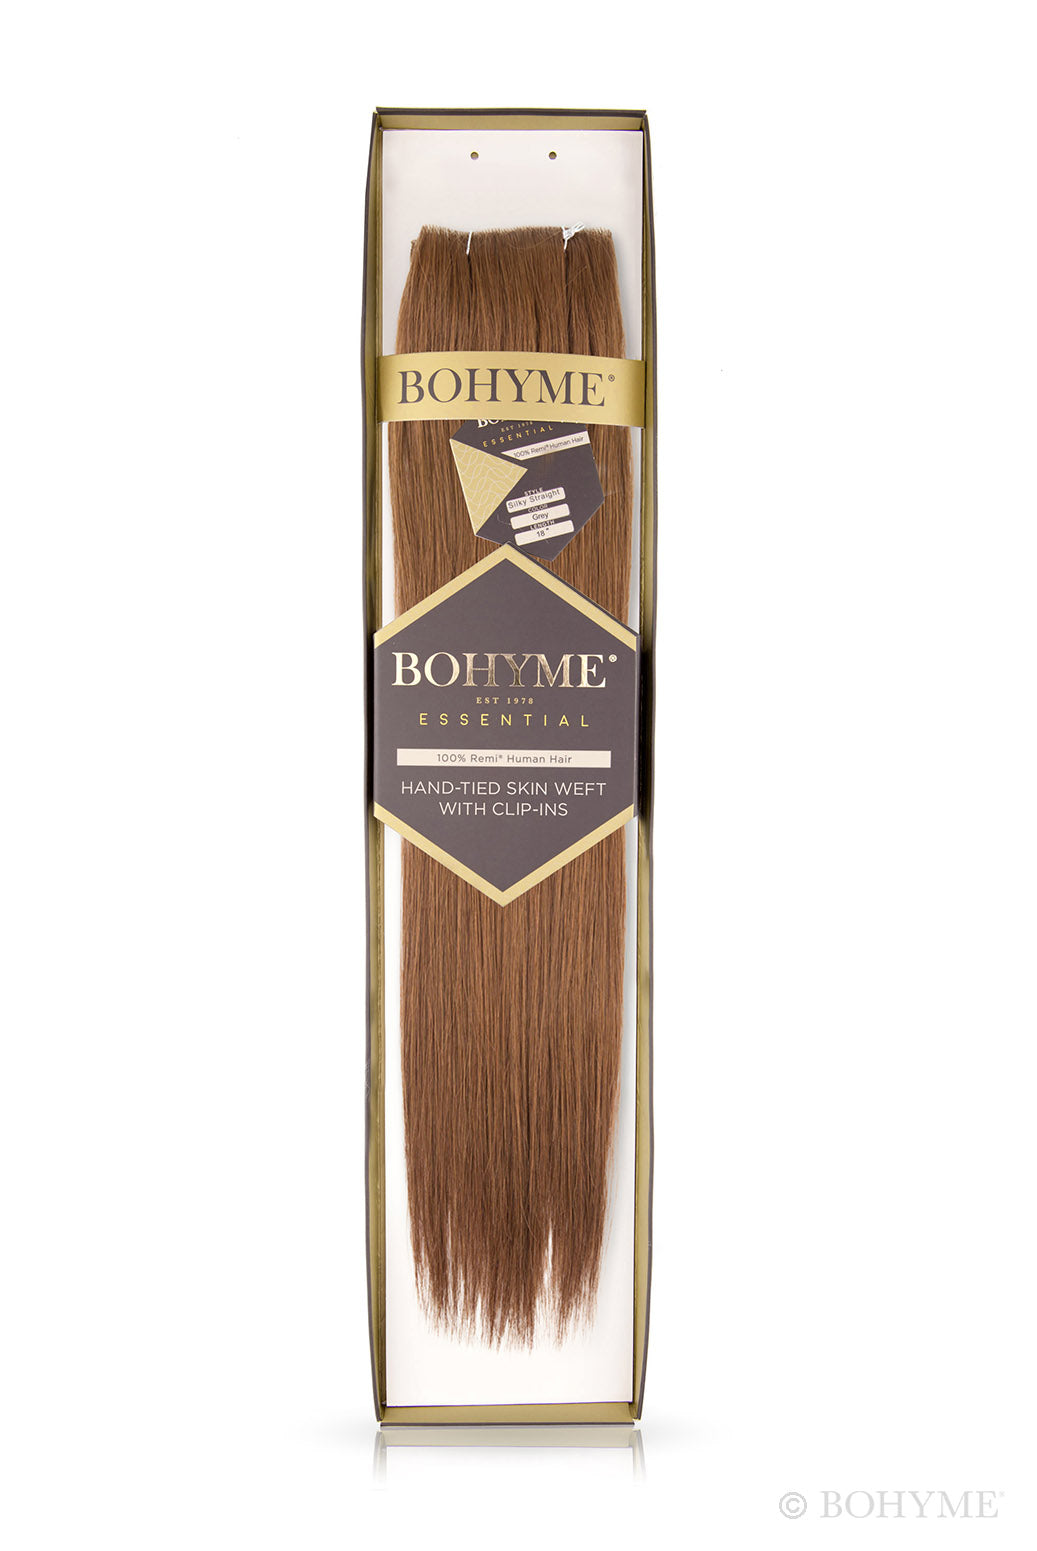 "Bohyme Essentials Collection Hand-tied Skin Weft 18"" Extensions"